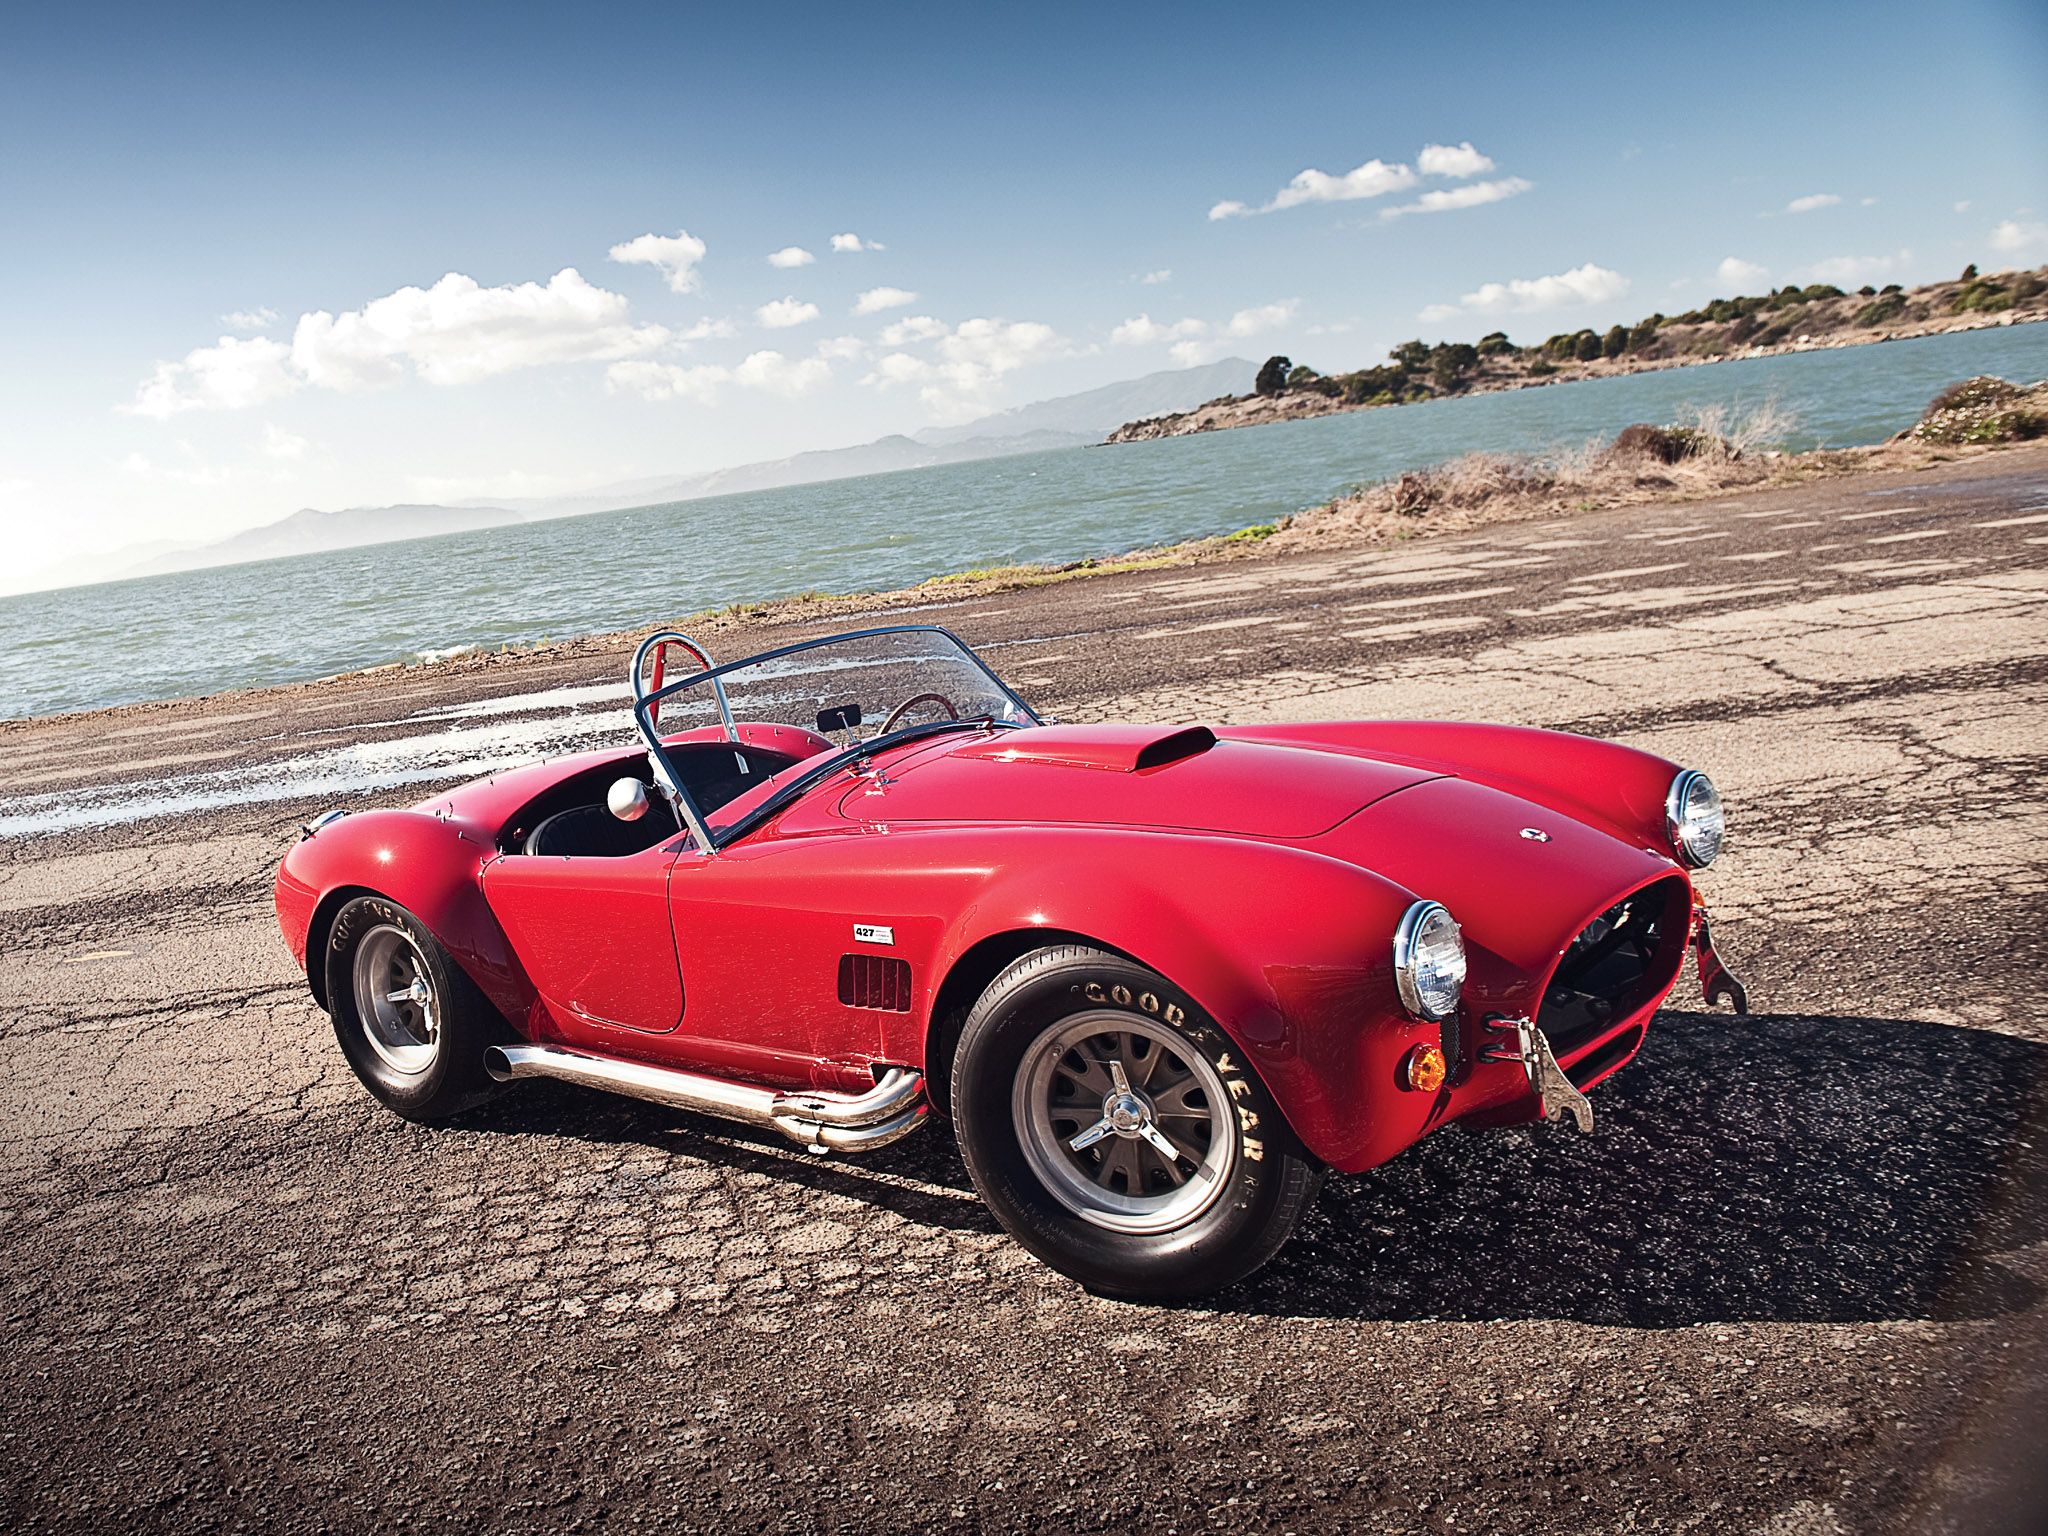 Muscle Car Pics >> 1966 Shelby Cobra 427 MkIII supercar supercars classic muscle race racing w wallpaper ...